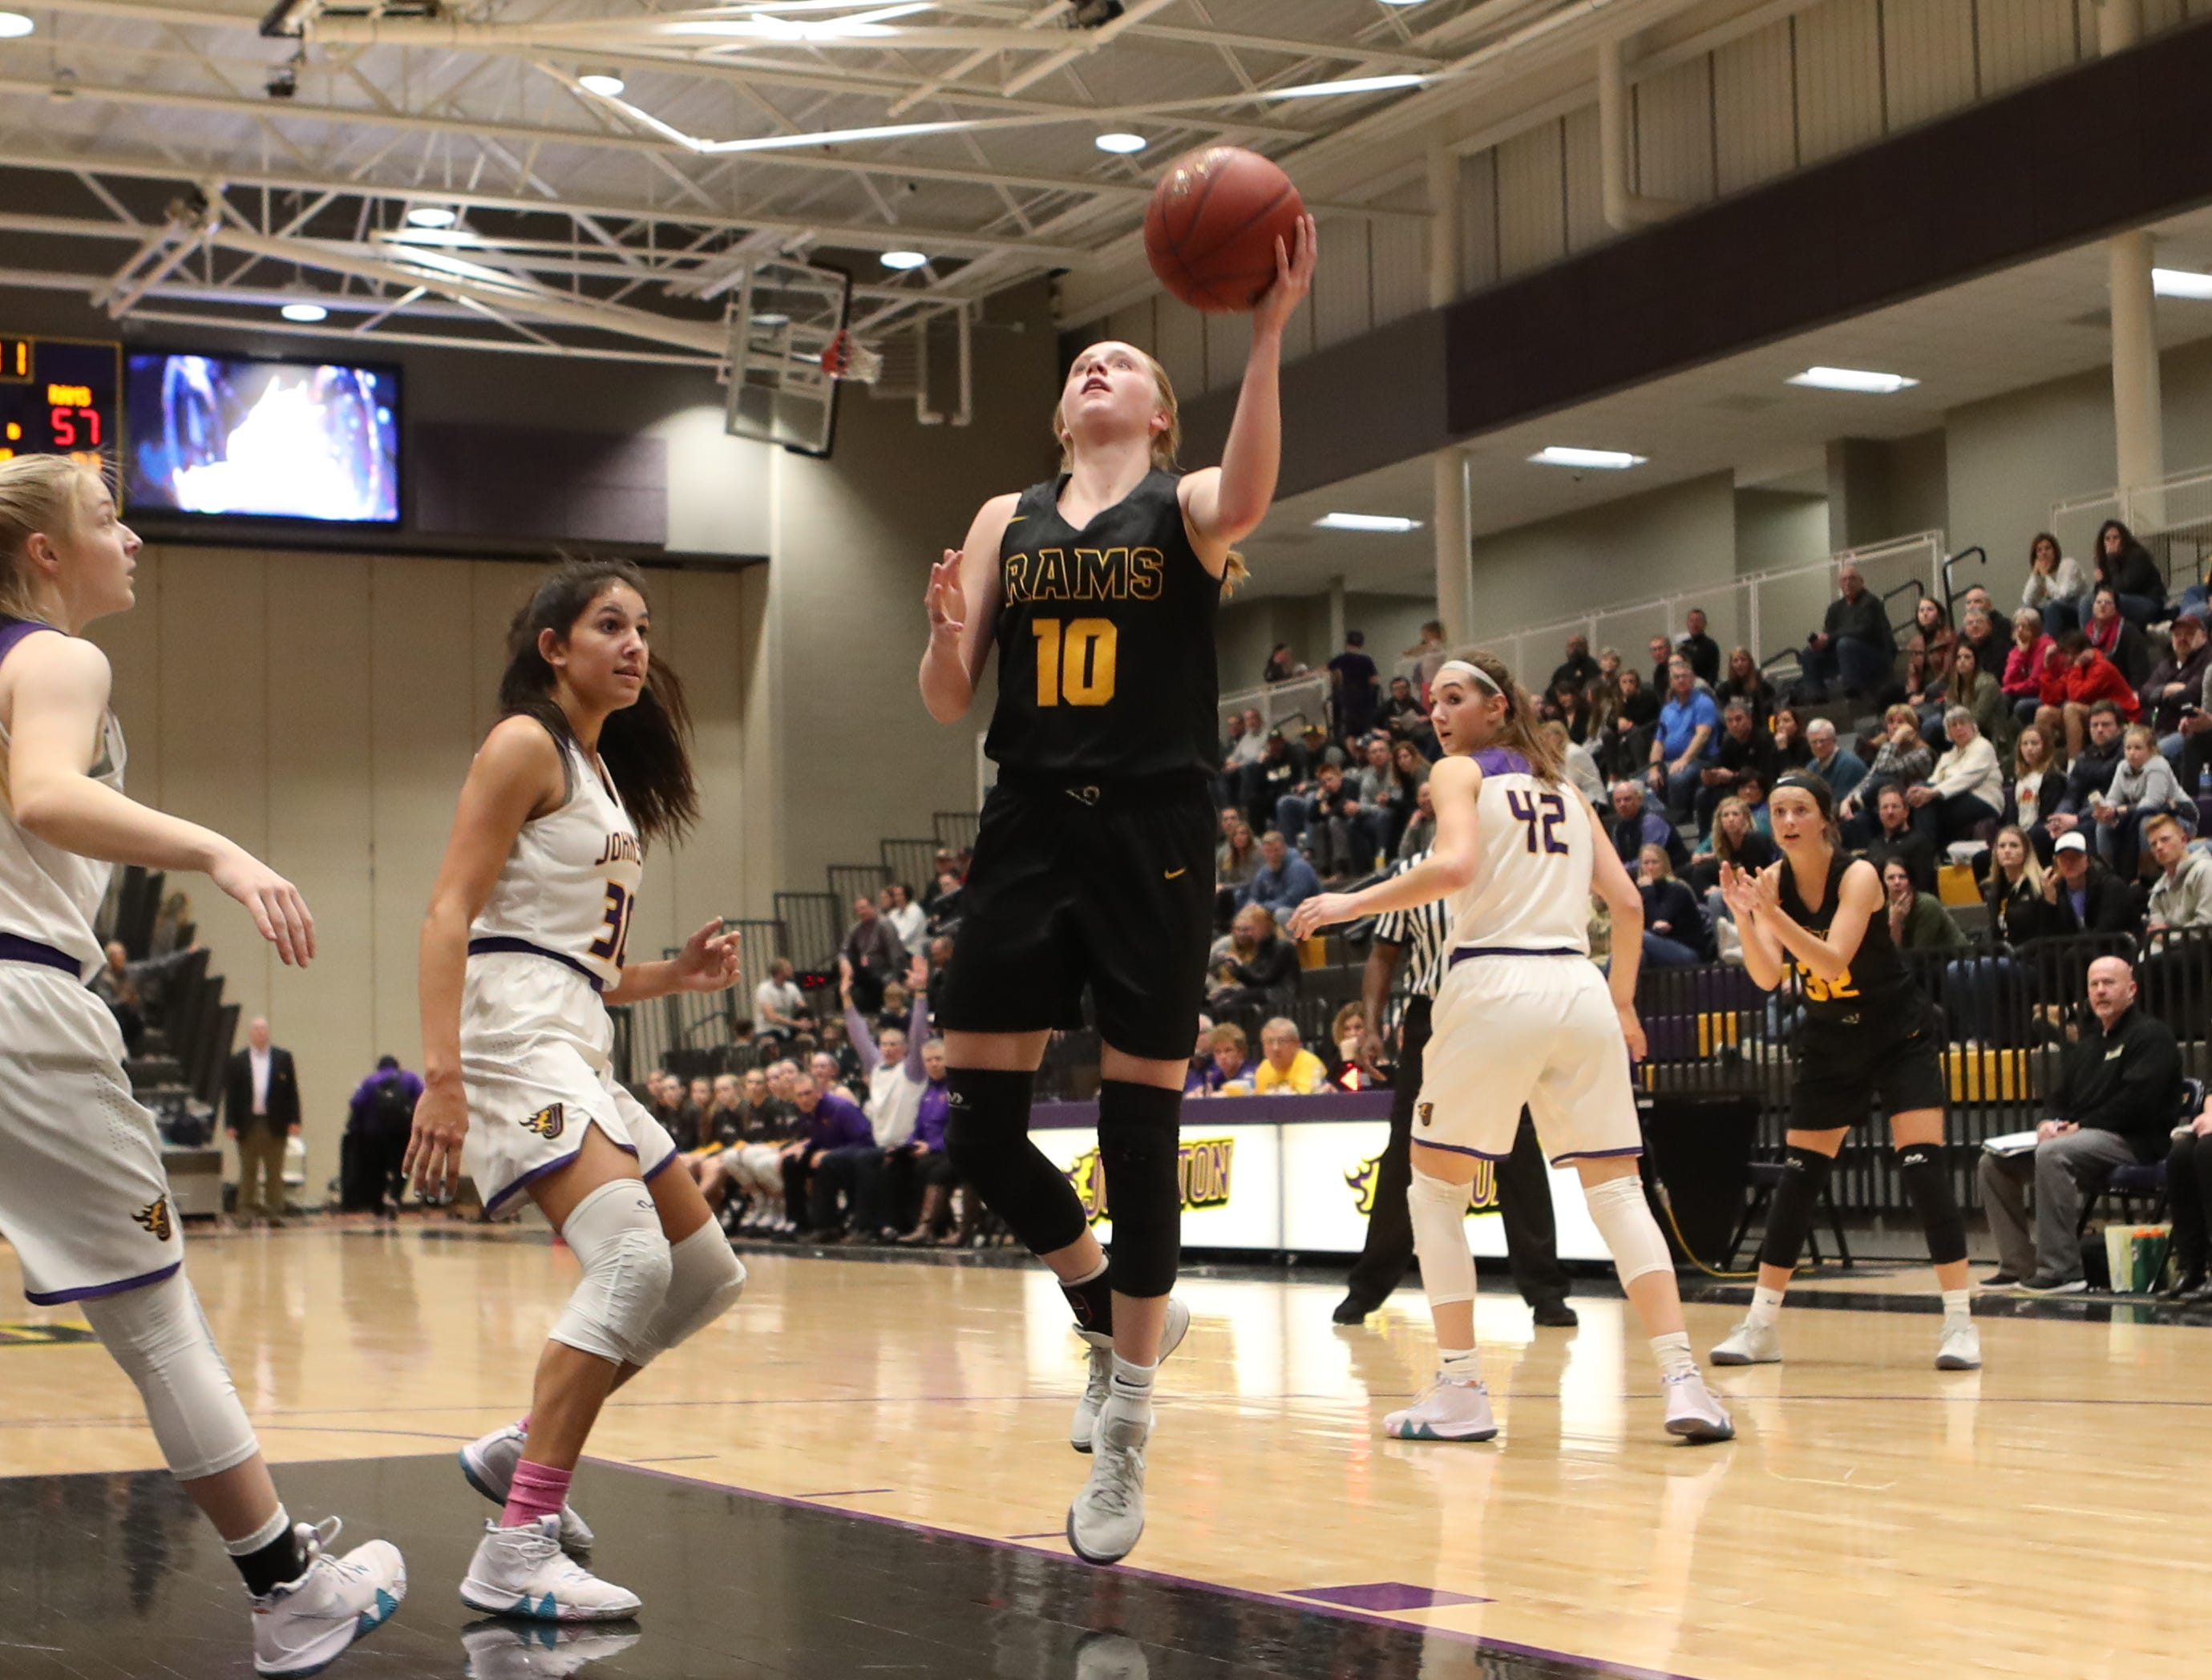 Southeast Polk's Grace Larkins (10) shoots Feb. 5 in a game against No. 1 Johnston at Johnston High School. The Dragons won the game 89-67. McGraw had 23 points.